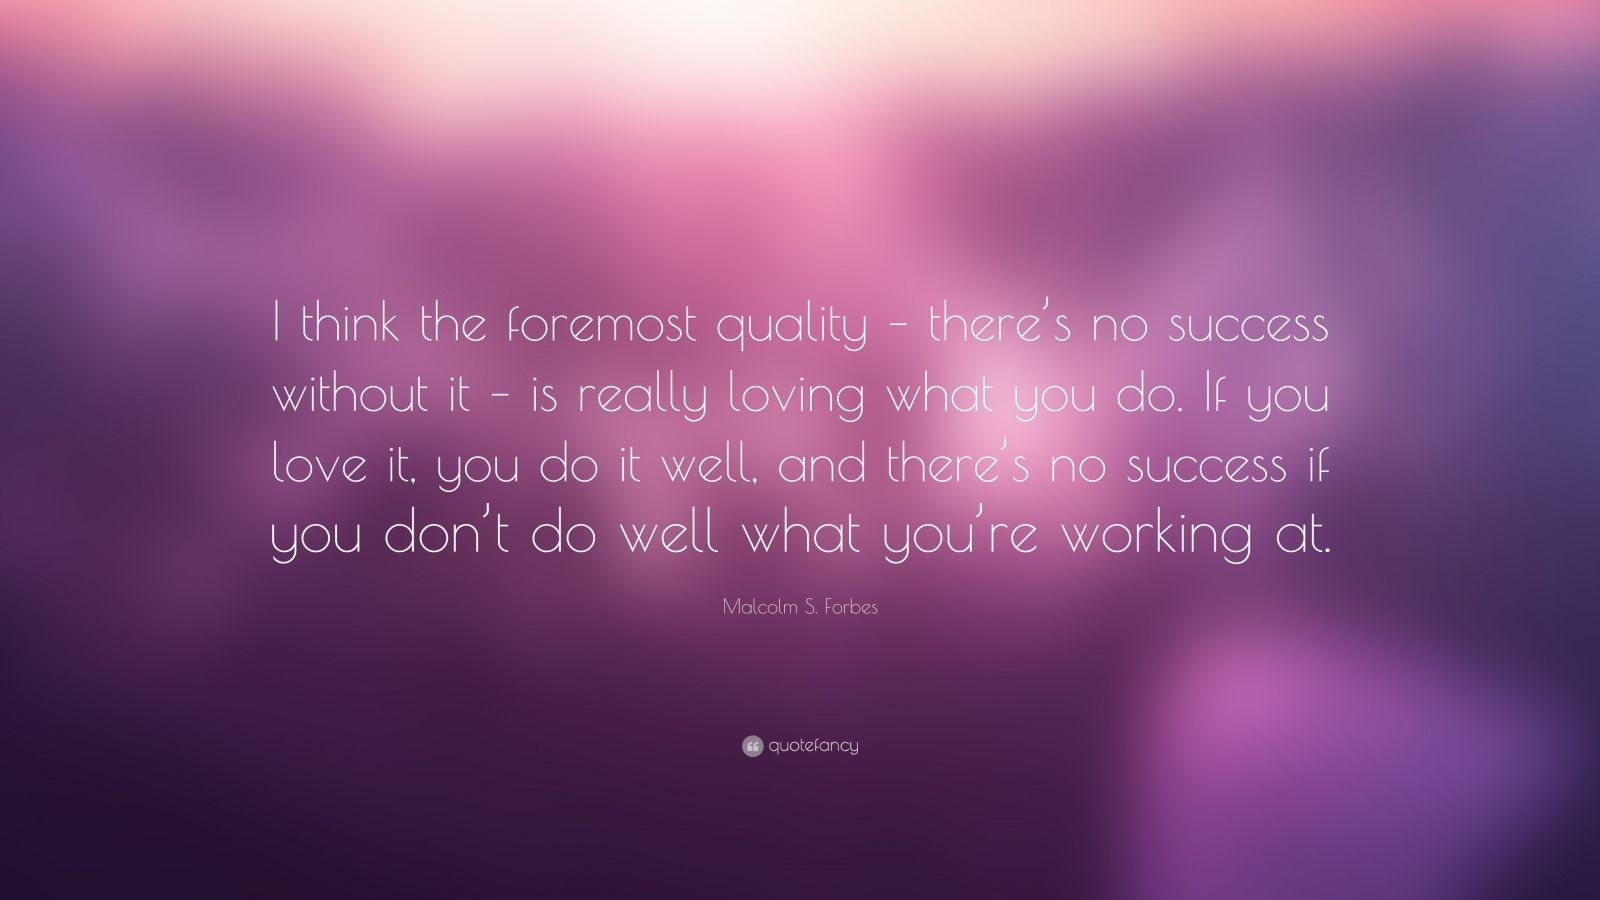 """Malcolm S. Forbes Quote: """"I think the foremost quality – there's no success without it – is really loving what you do. If you love it, you do it well, and there's no success if you don't do well what you're working at."""""""